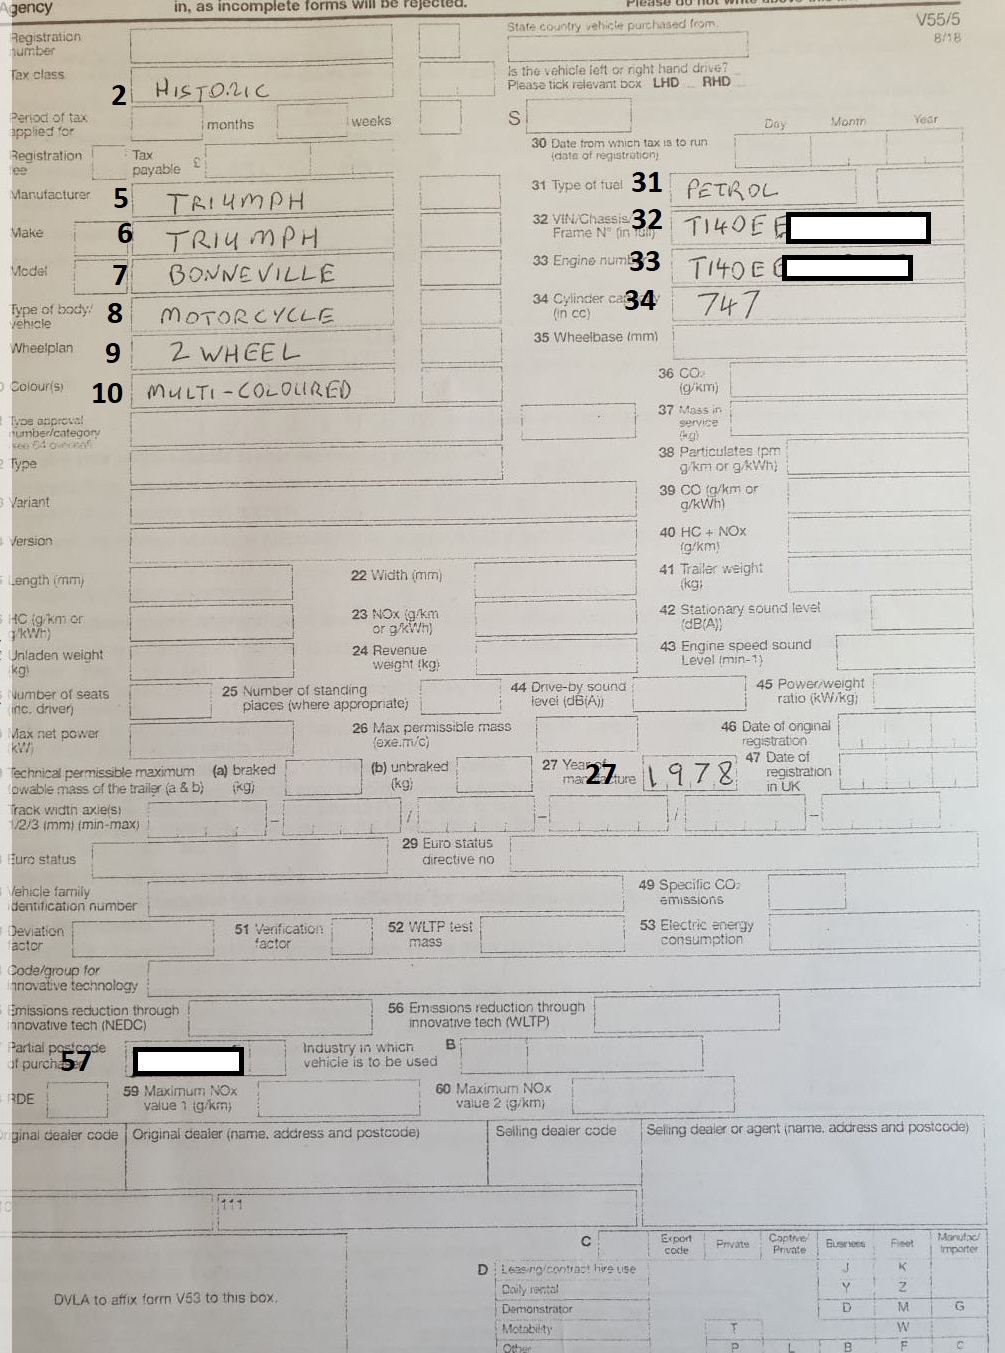 The V55/5 Form page 1 from the DVLA. An example of how to fill it in.